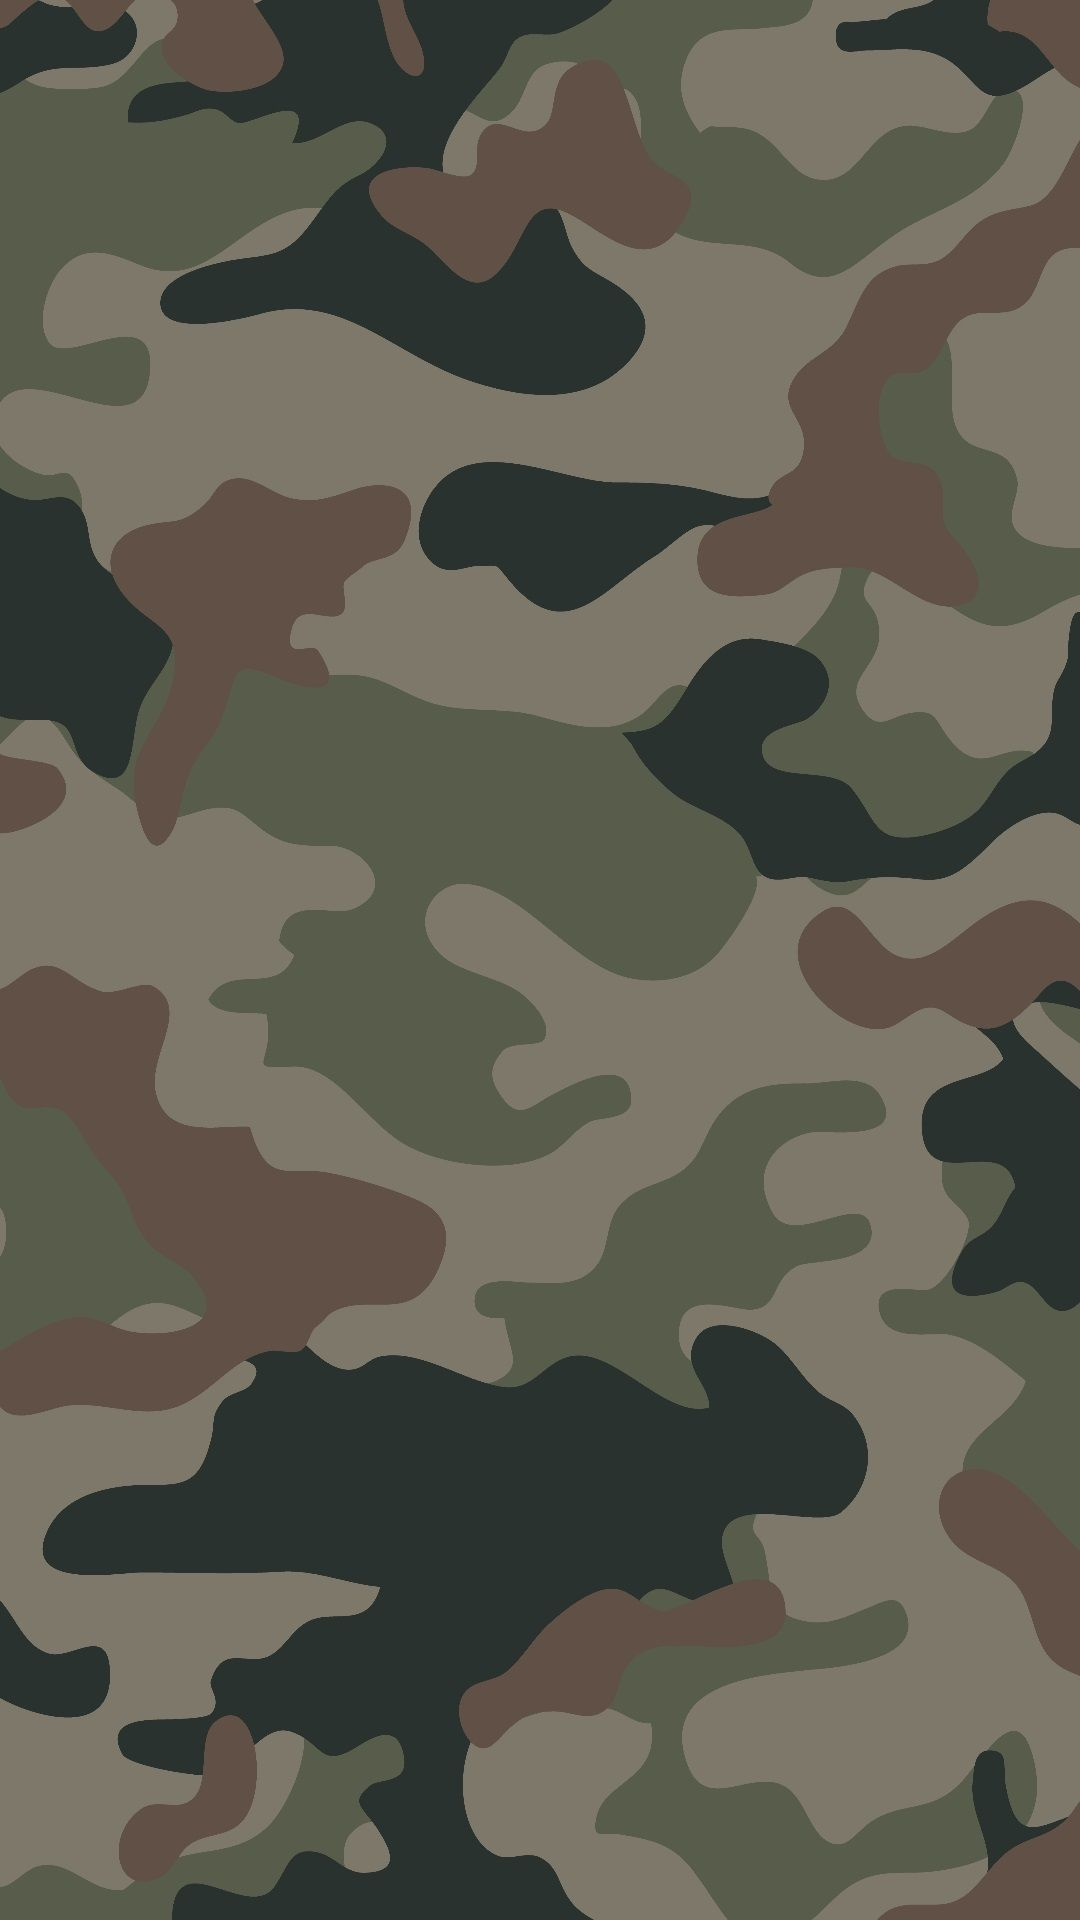 Camouflage wallpaper for iPhone or Android. Tags camo